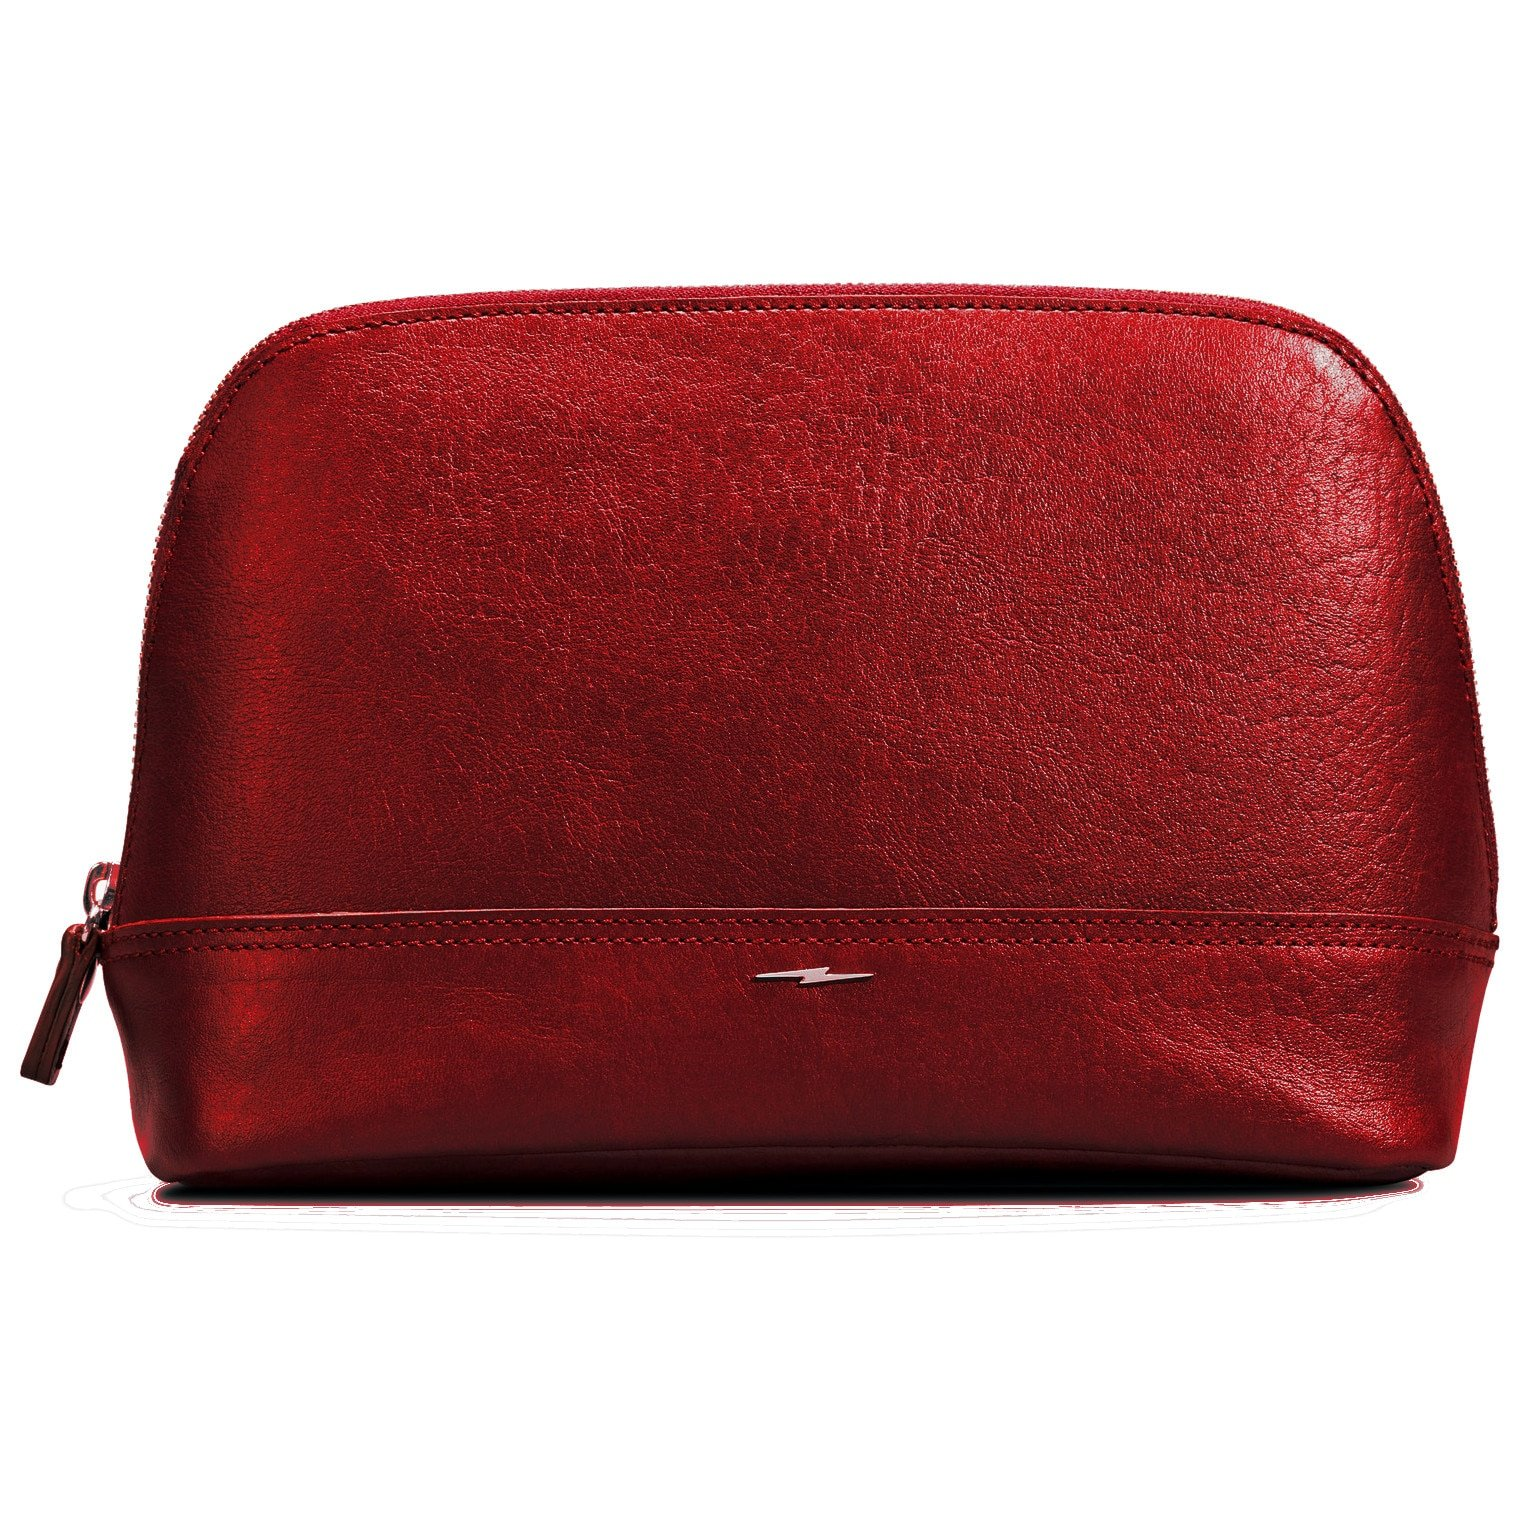 Shinola Premium Genuine Leather Large Cosmetic Makeup Bag Pouch Travel Organizer Toiletry Clutch Chili